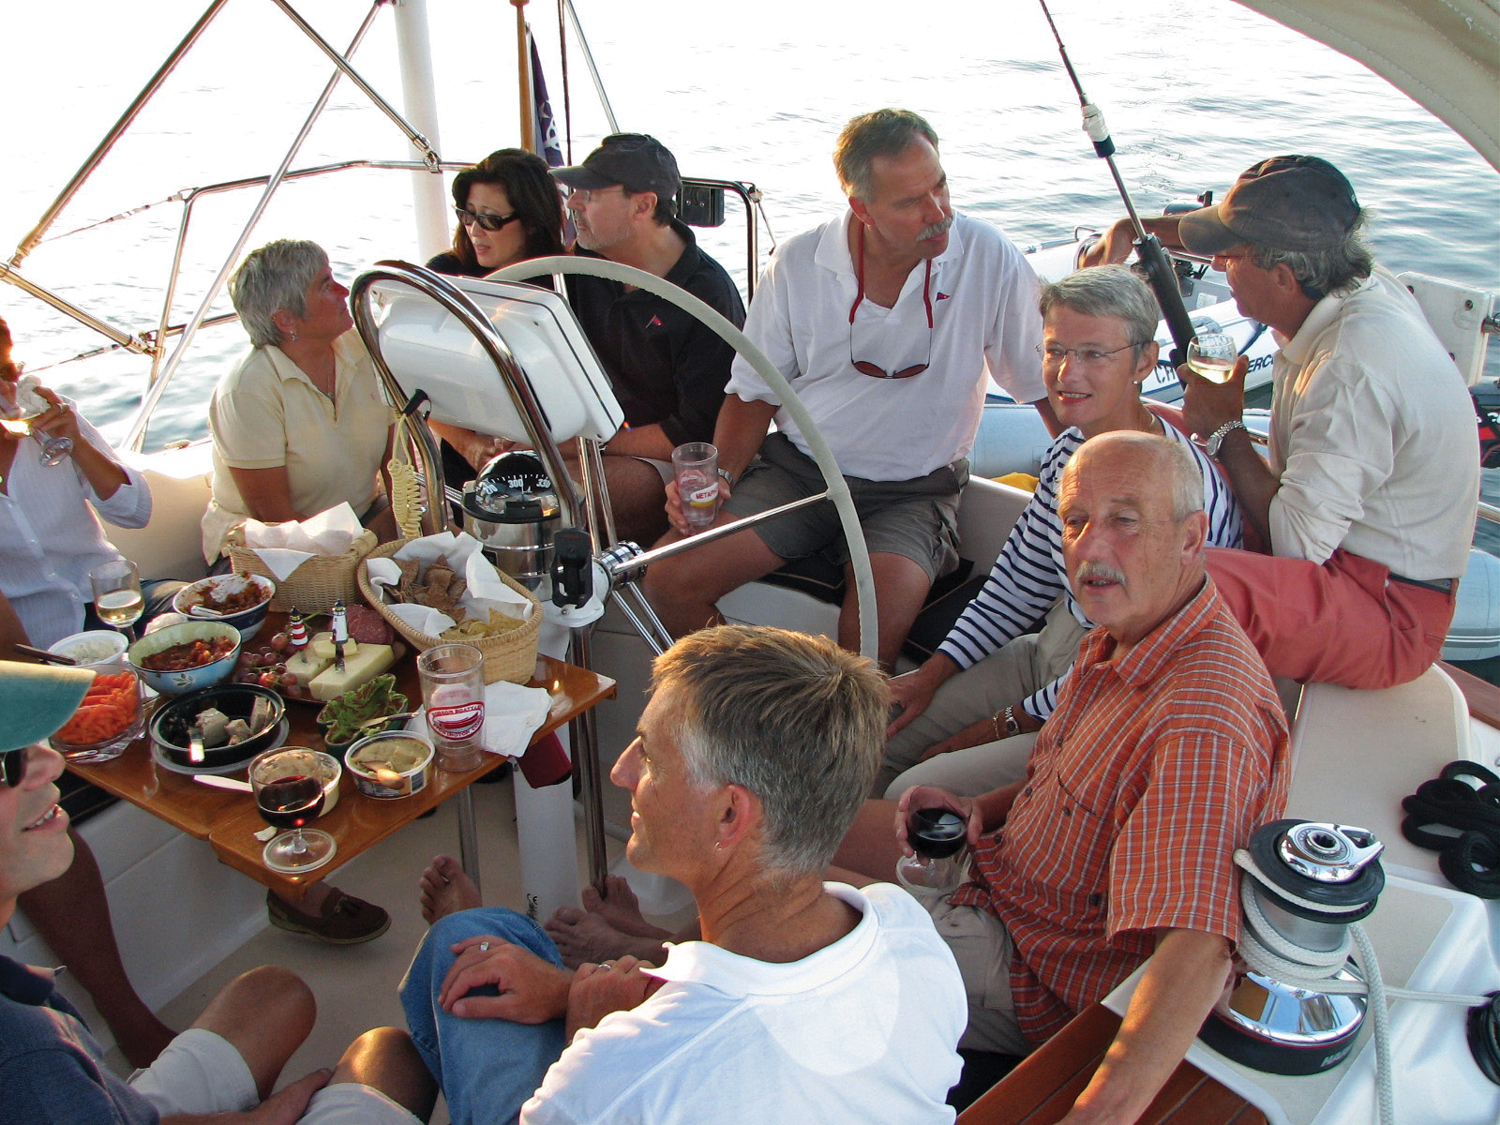 Friends of Arnold and Ronna Ziegel's aboard the Metaphor, sailing in Maine